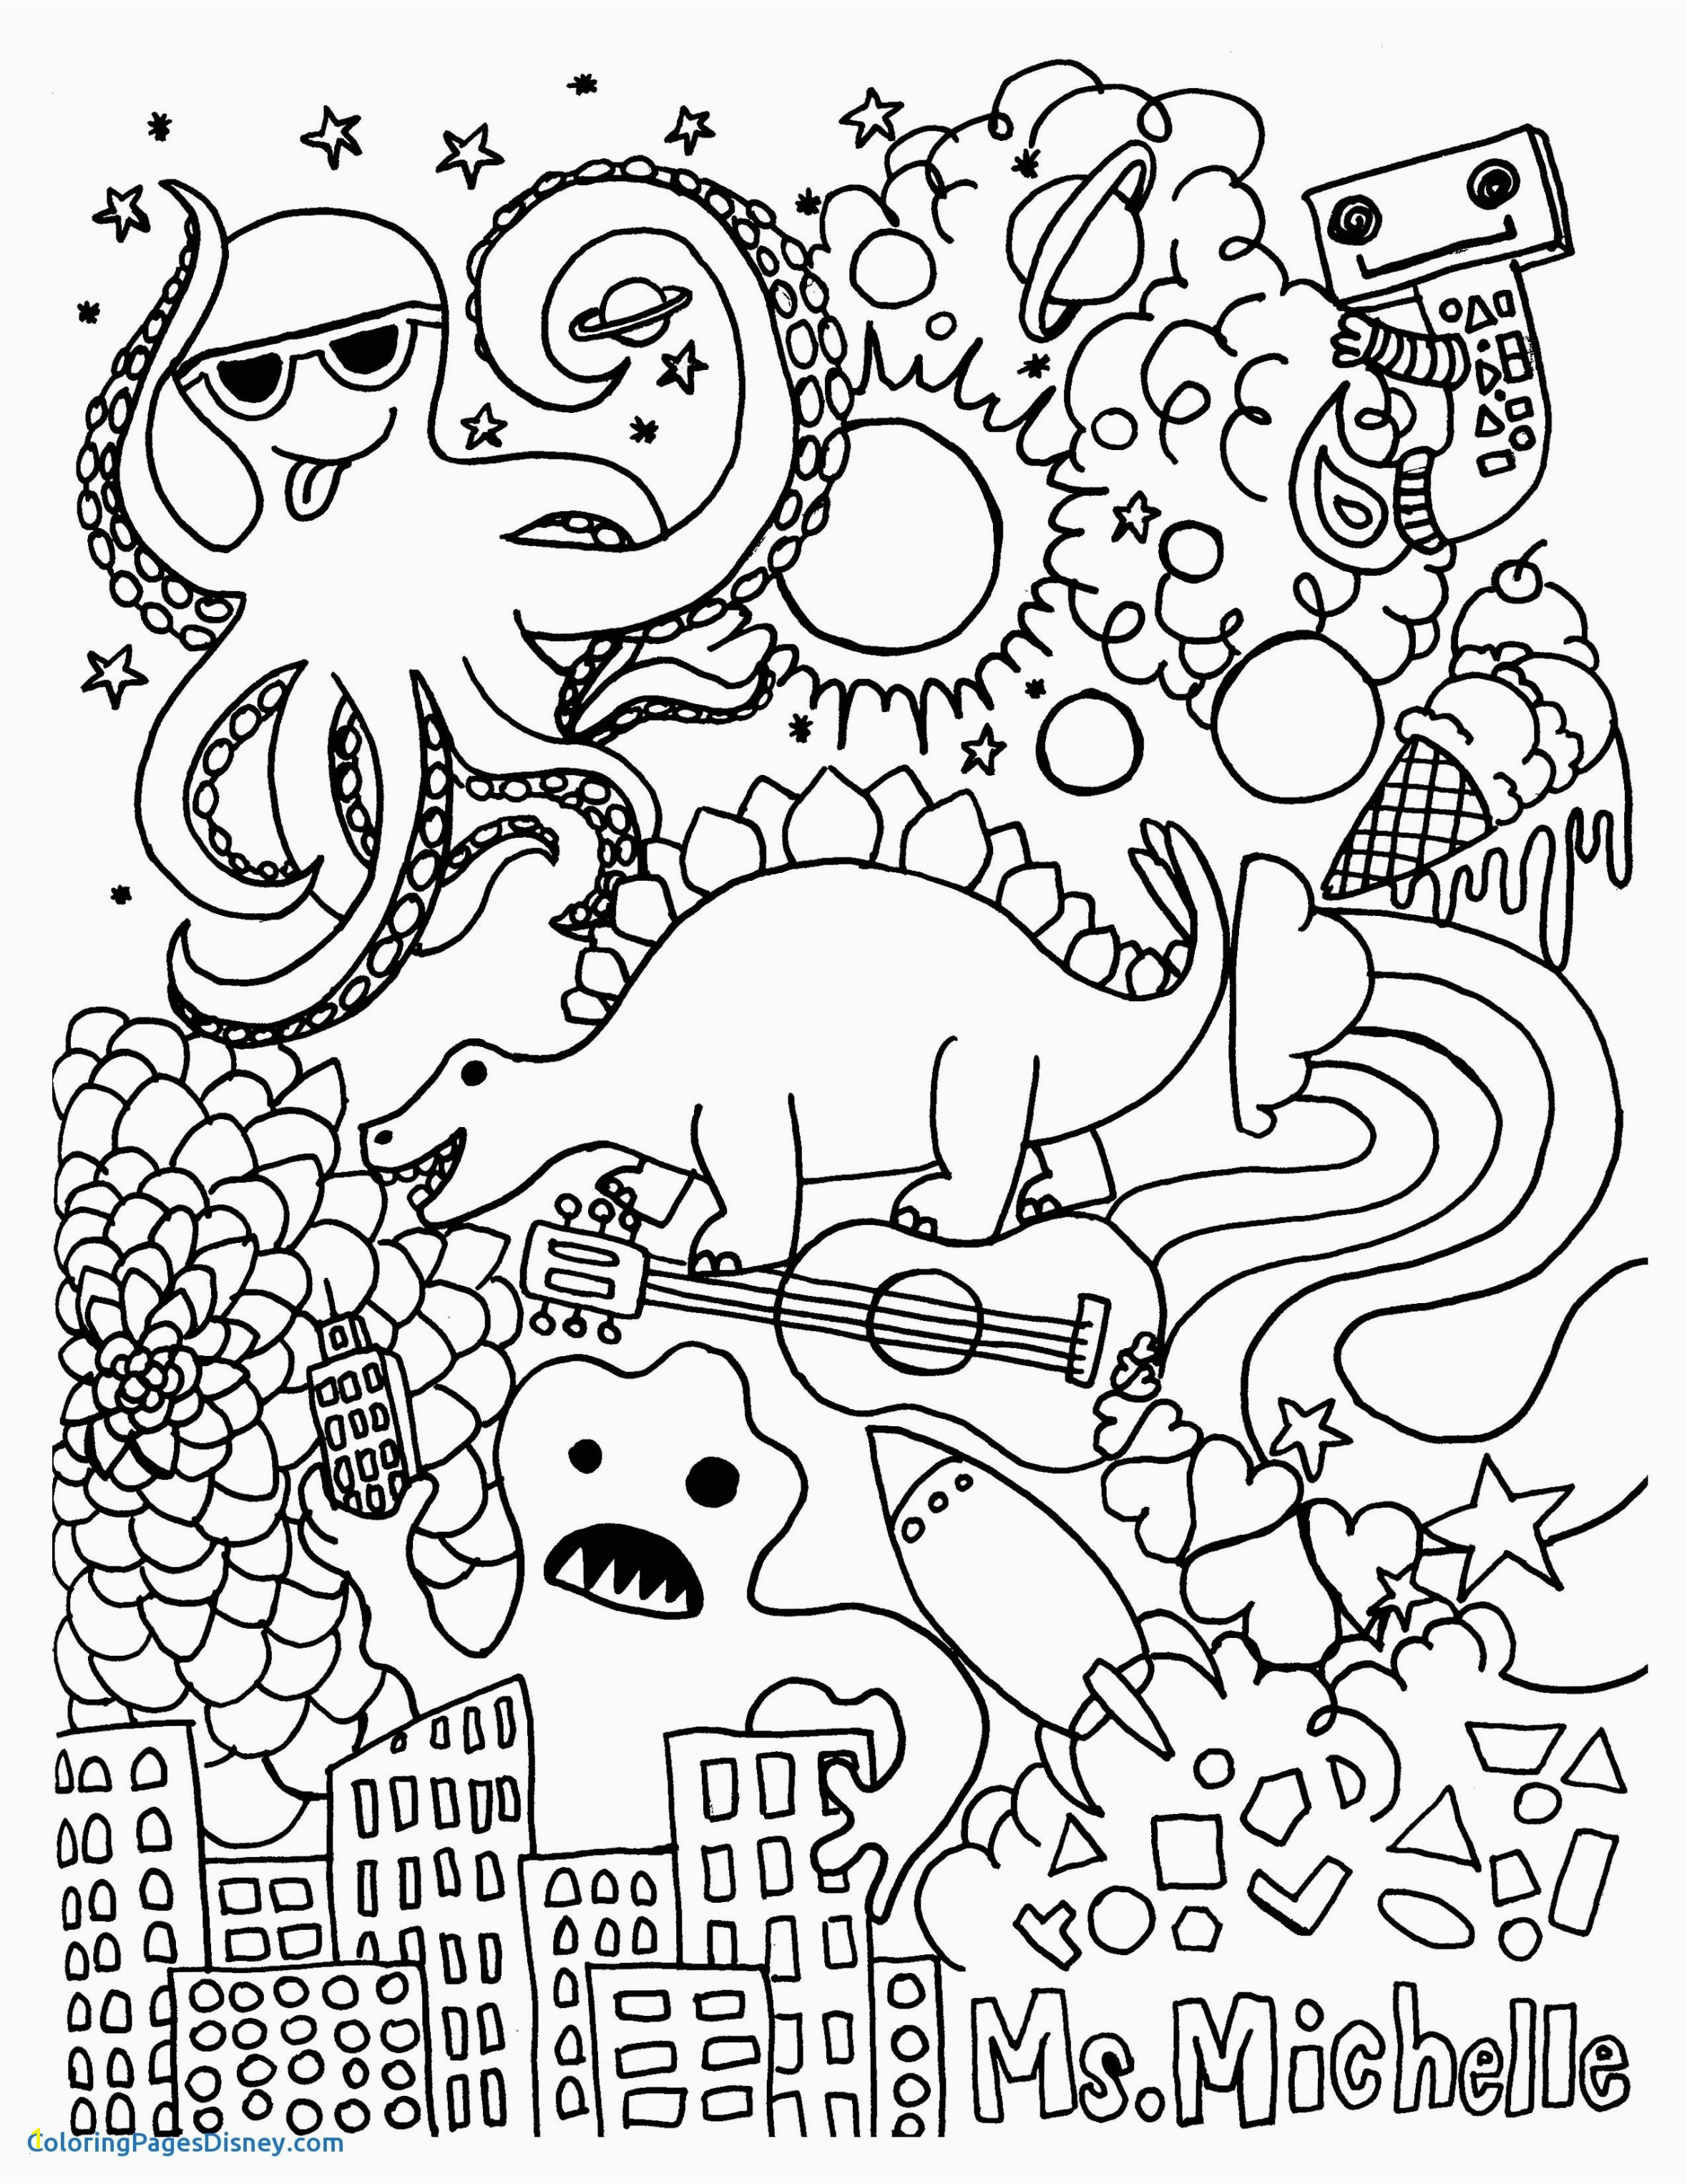 Monster Uni Ausmalbilder Schön Coloring Pages Free Printable Coloring Pages for Children that You